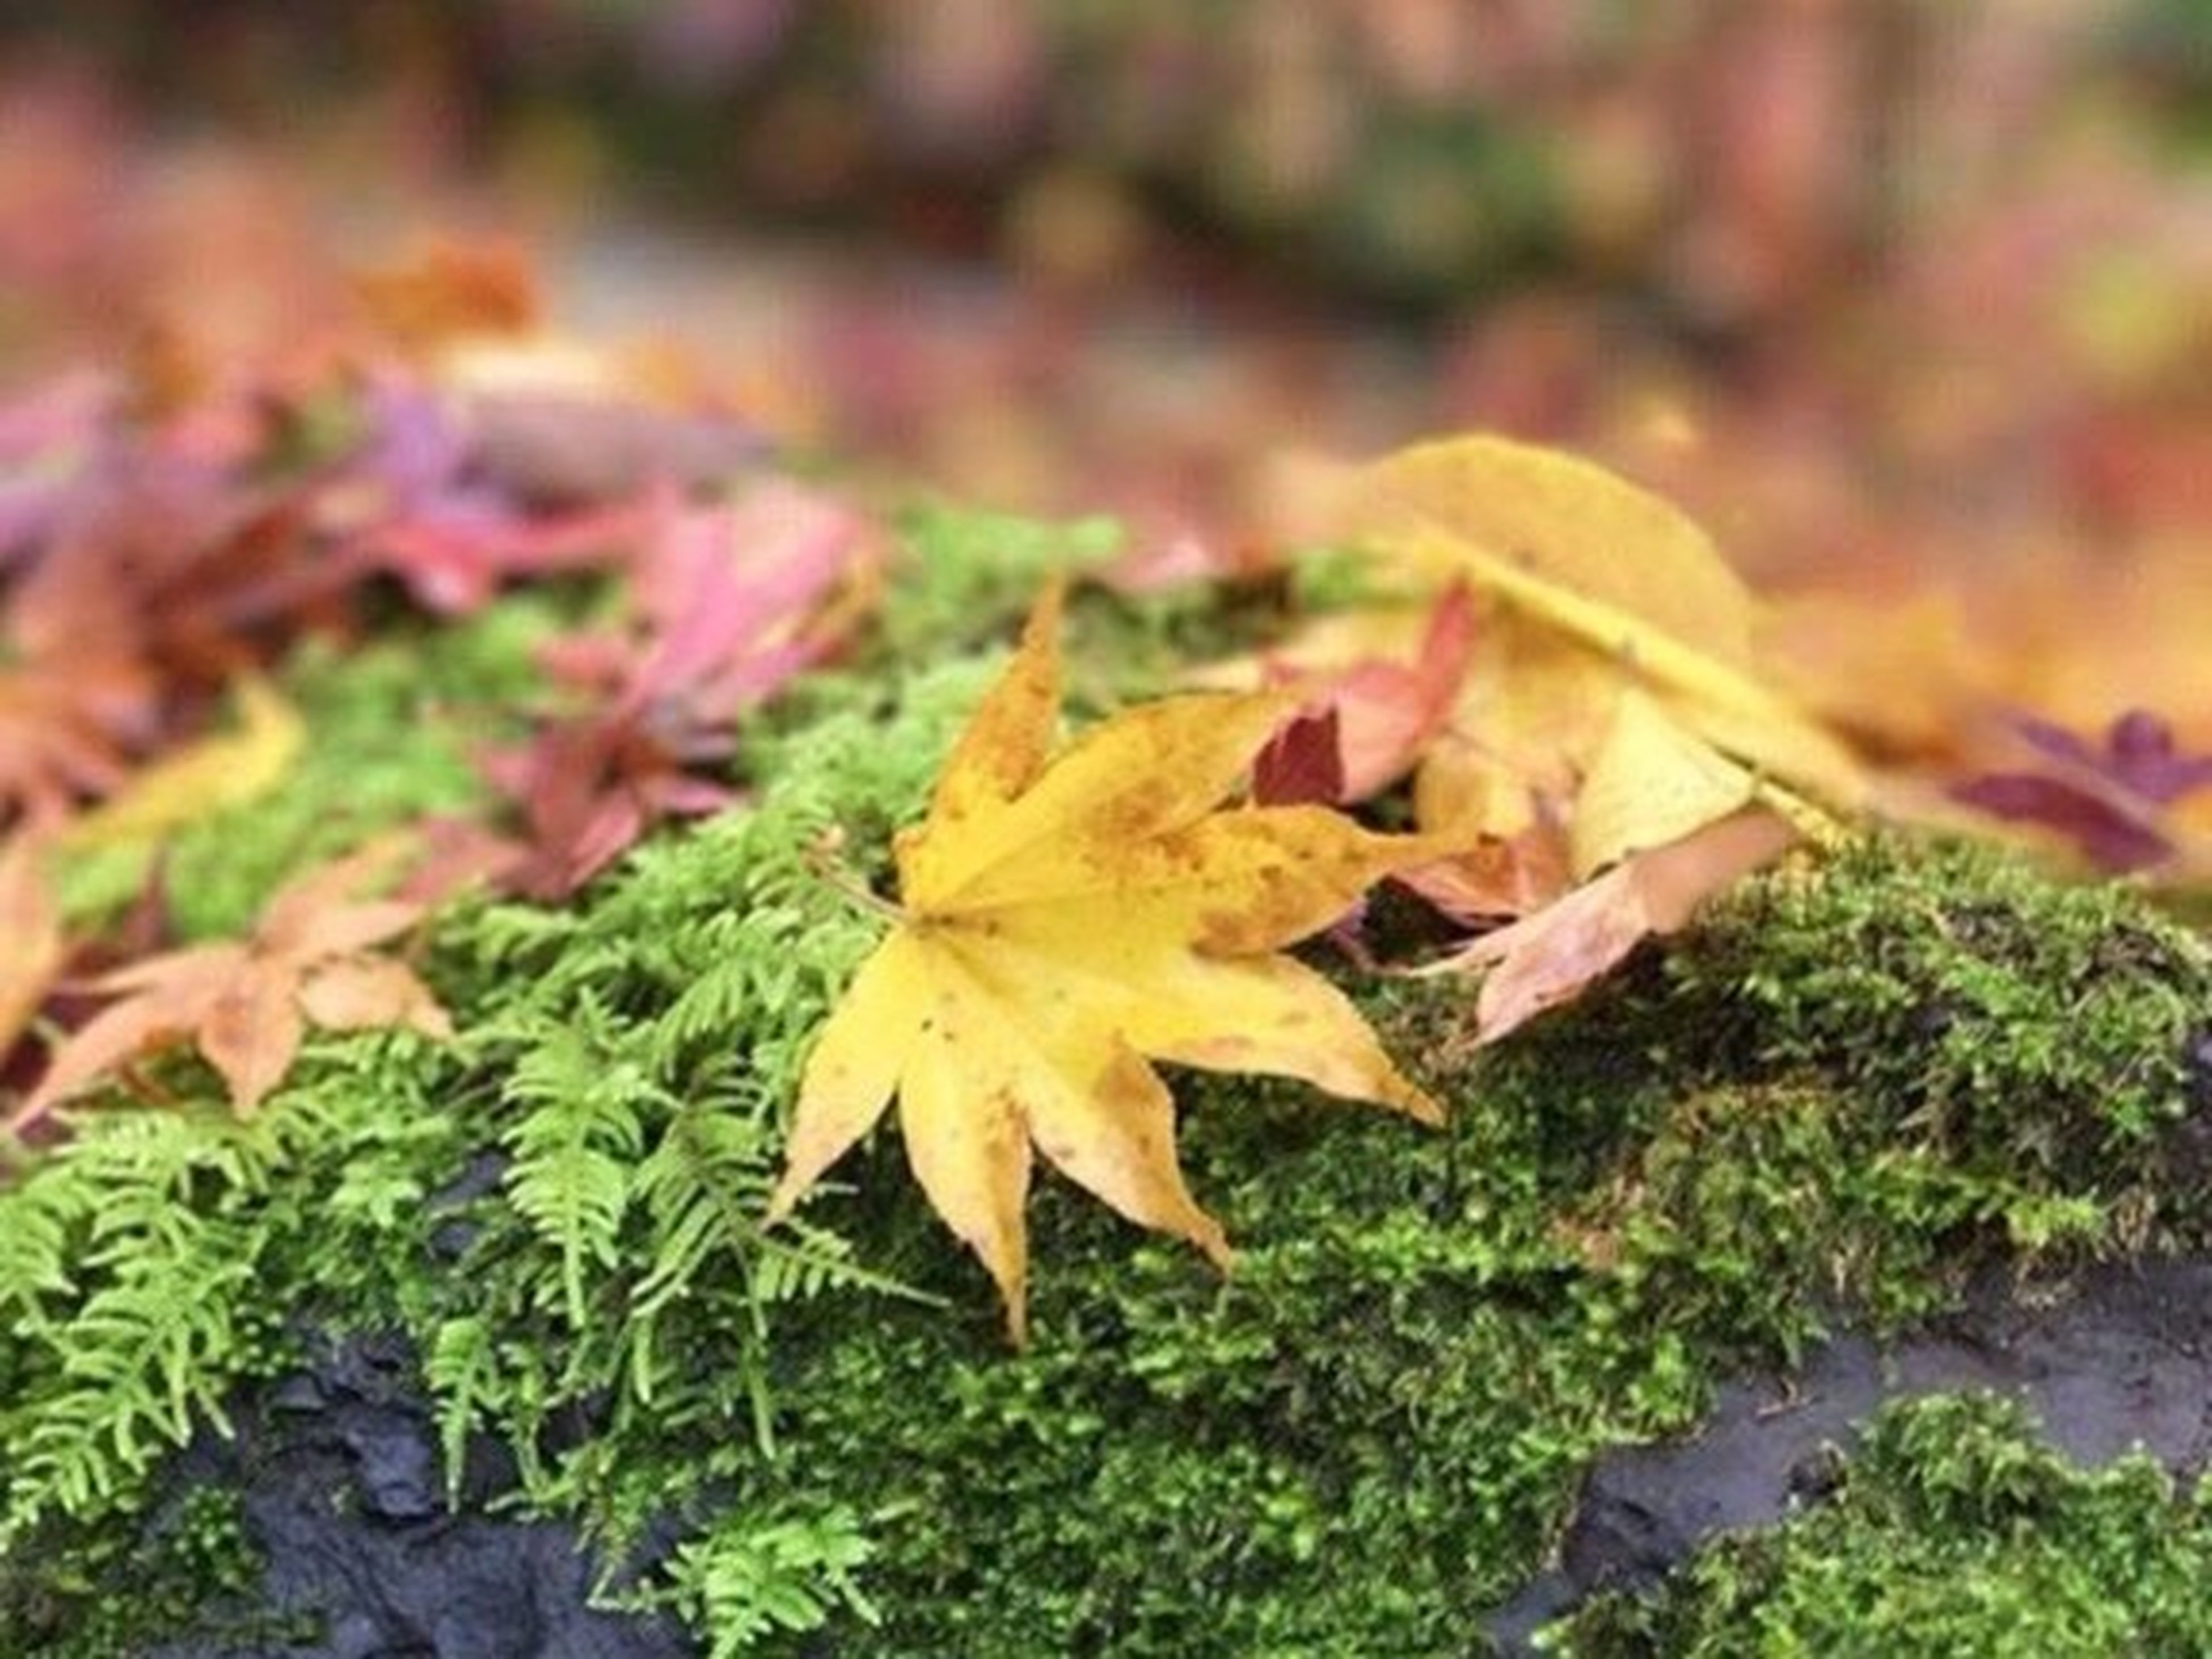 leaf, autumn, change, maple leaf, selective focus, dry, nature, maple, close-up, leaves, no people, outdoors, green color, beauty in nature, day, fallen leaf, grass